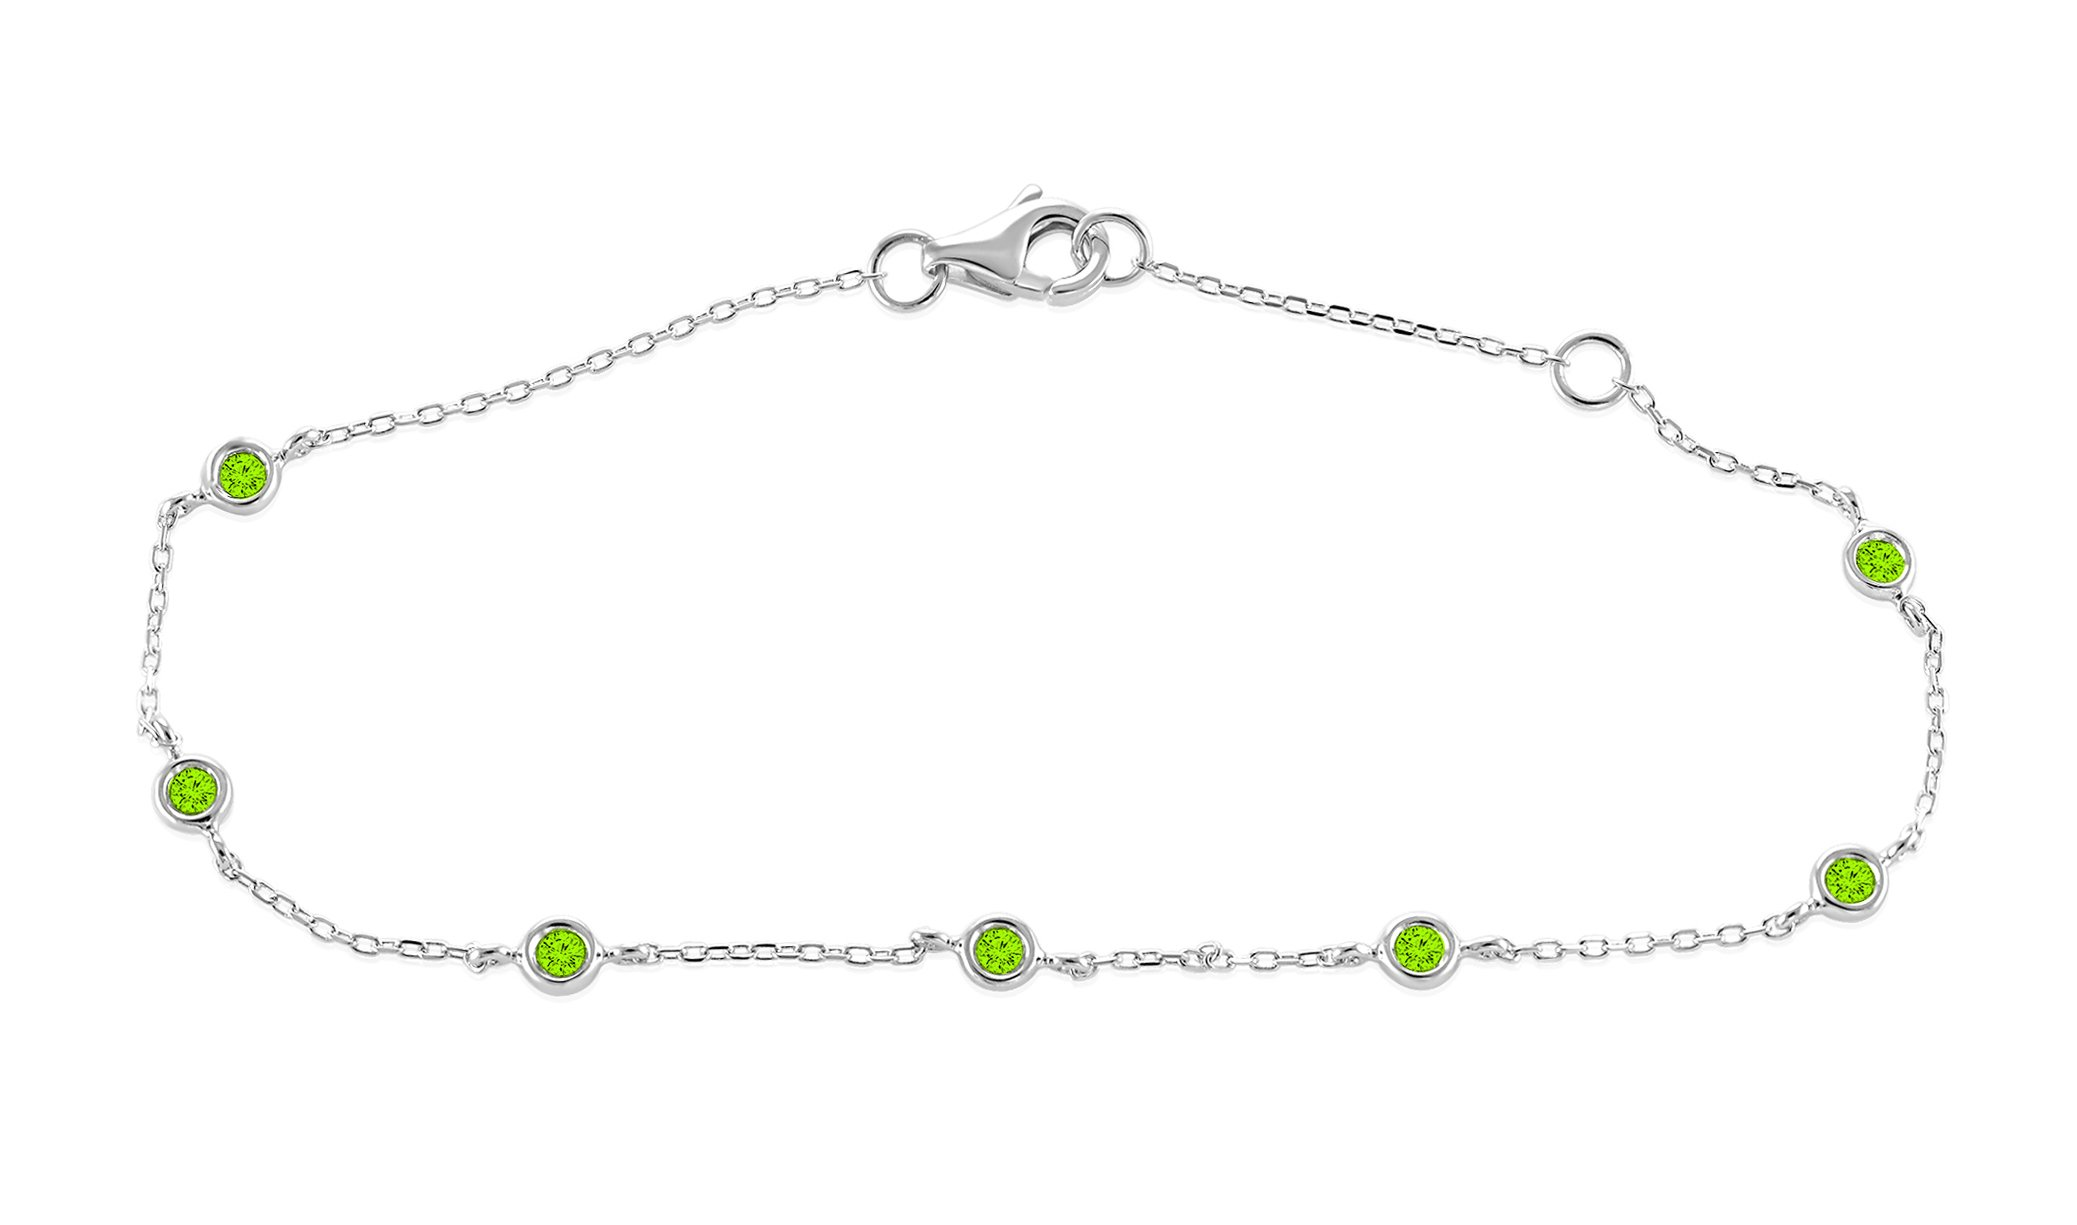 0.15 Ct. 925 Sterling Silver Natural Real Round Cut Bezel Set Green Peridot Chain Bracelet For Women